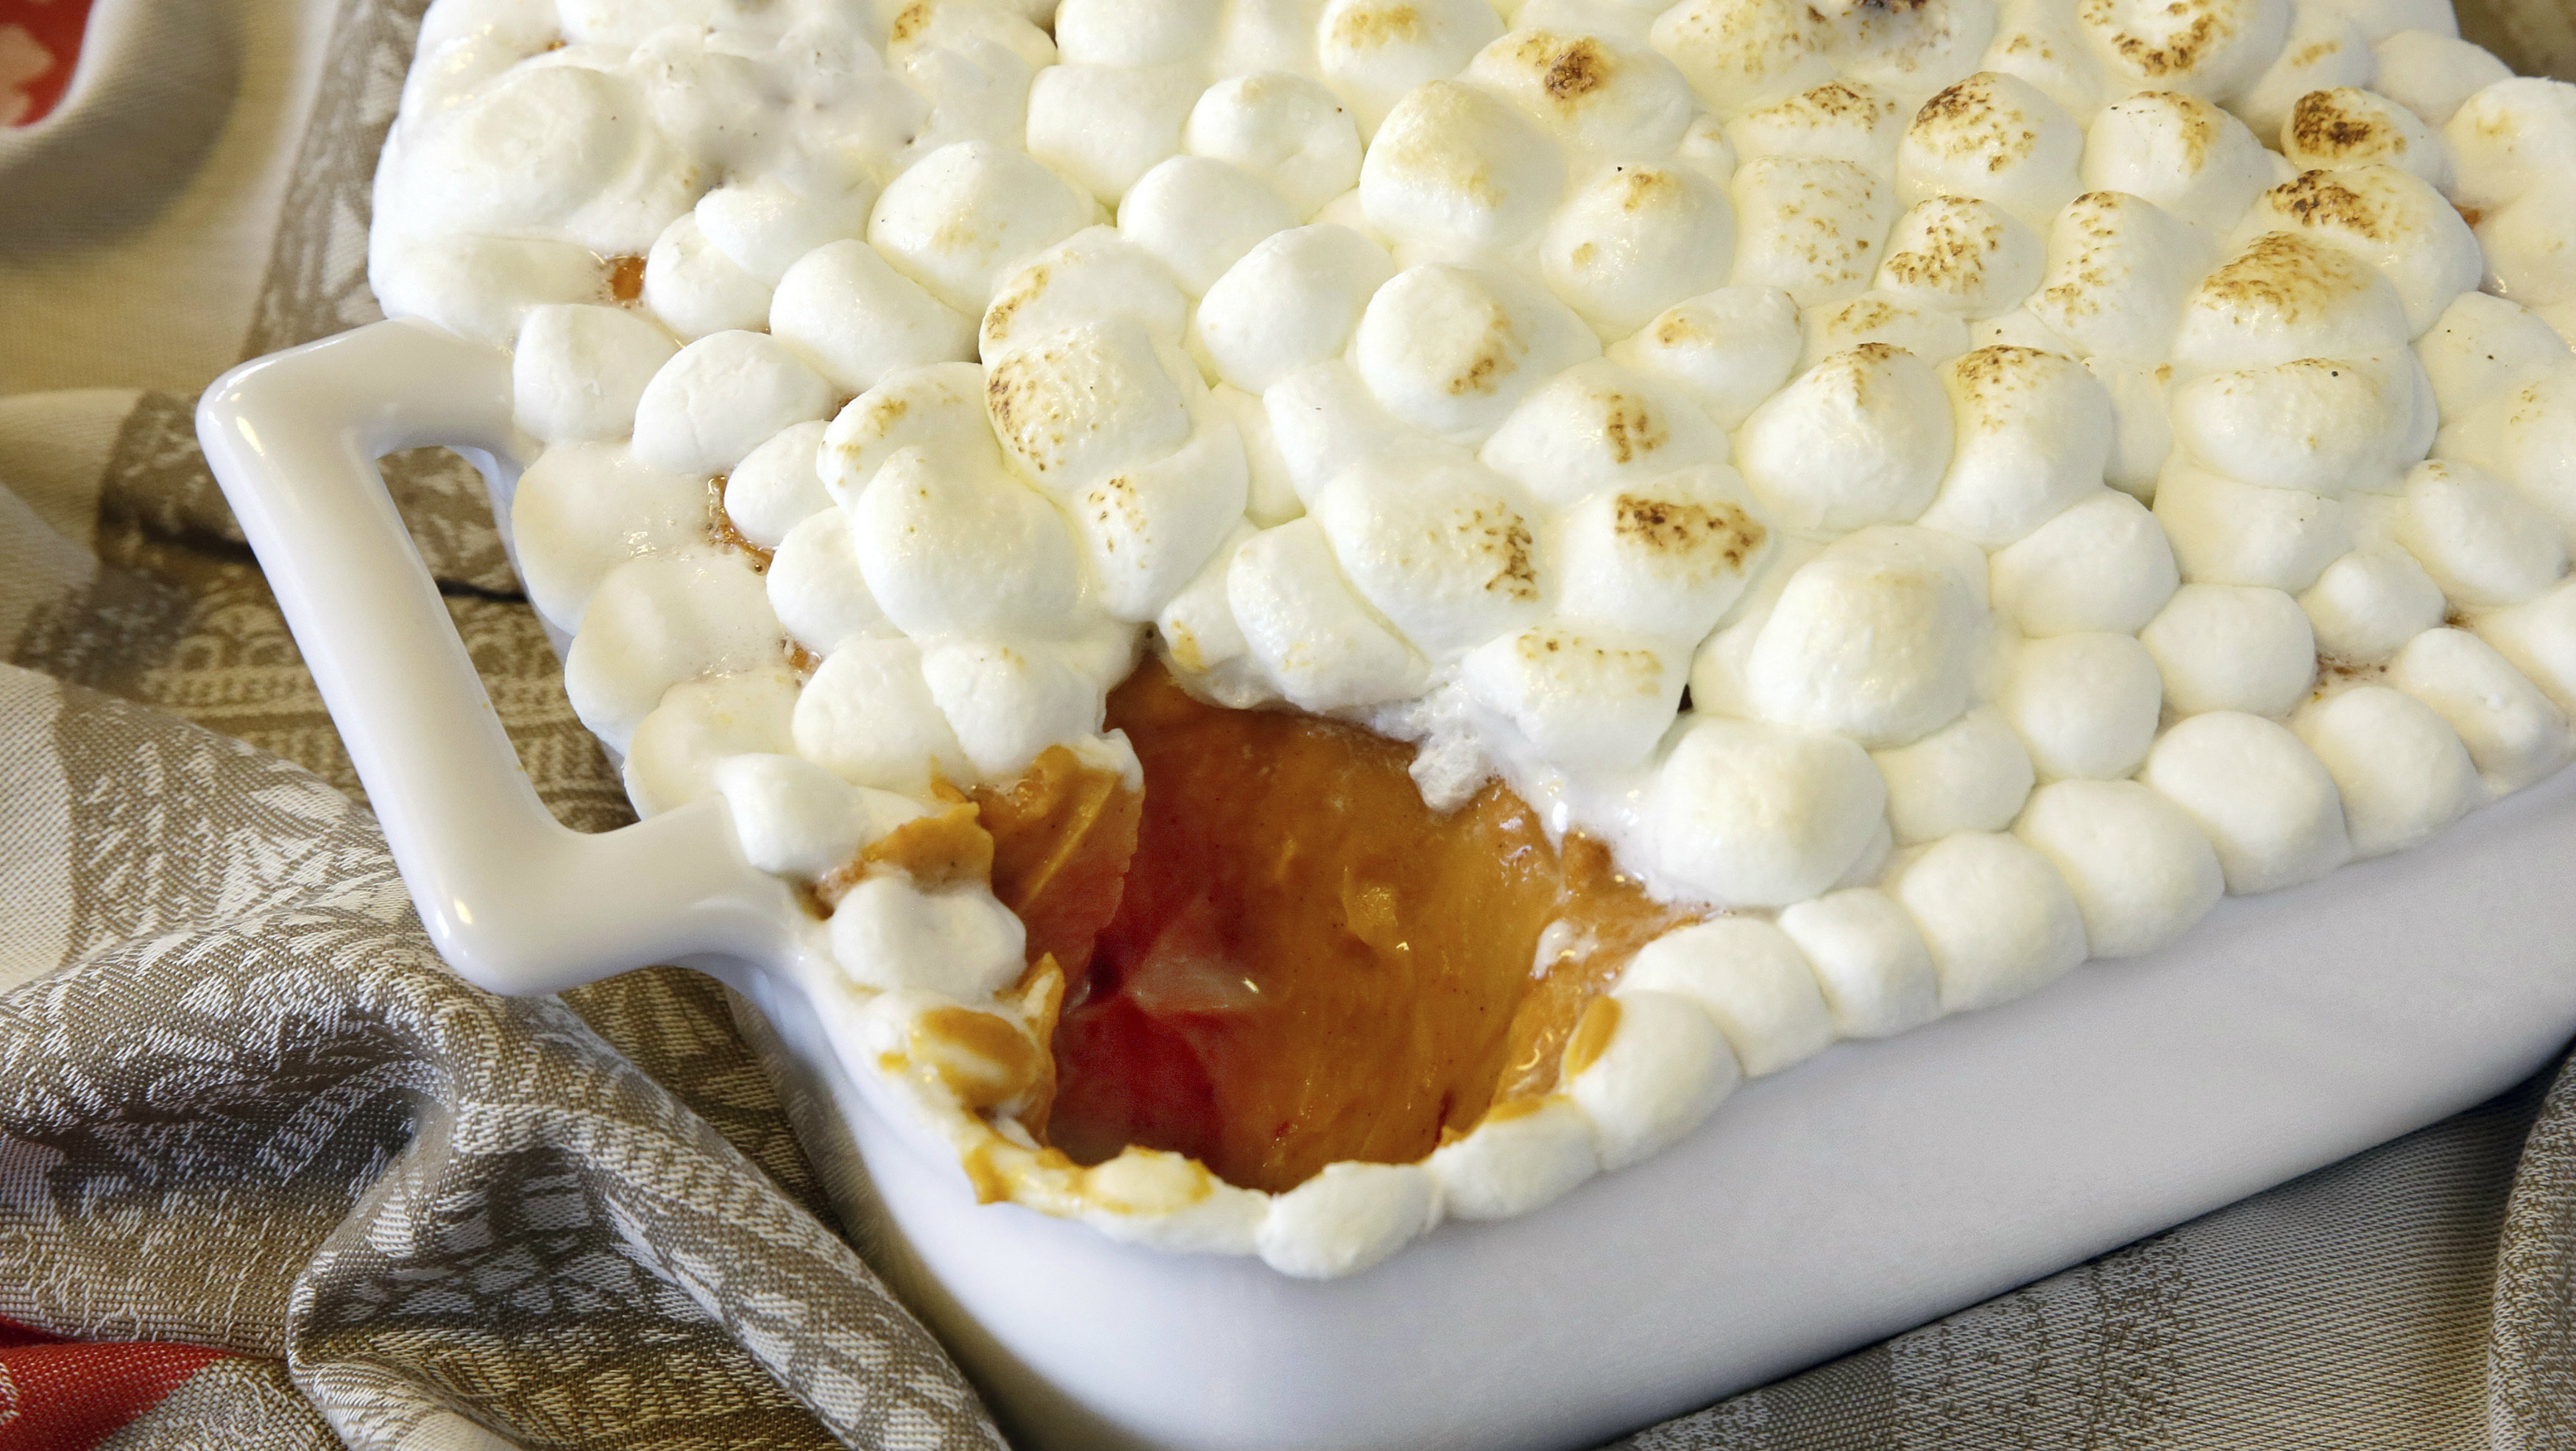 Recipe for sweet potato souffle with marshmallows on top